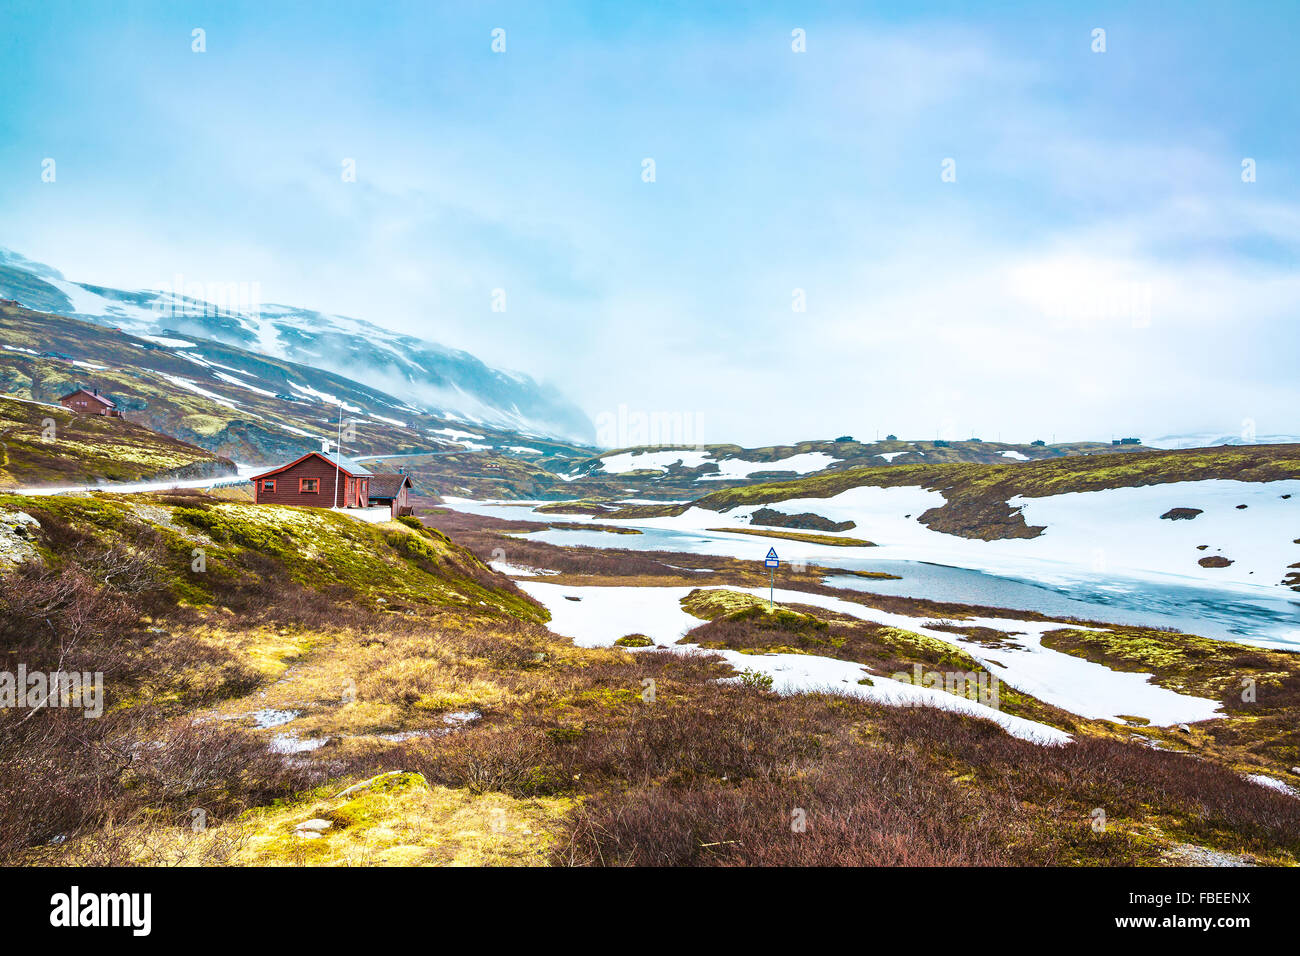 Norway landscape, a small village in inclement weather snowstorm and fog in the mountains. Beautiful Nature Norway. - Stock Image